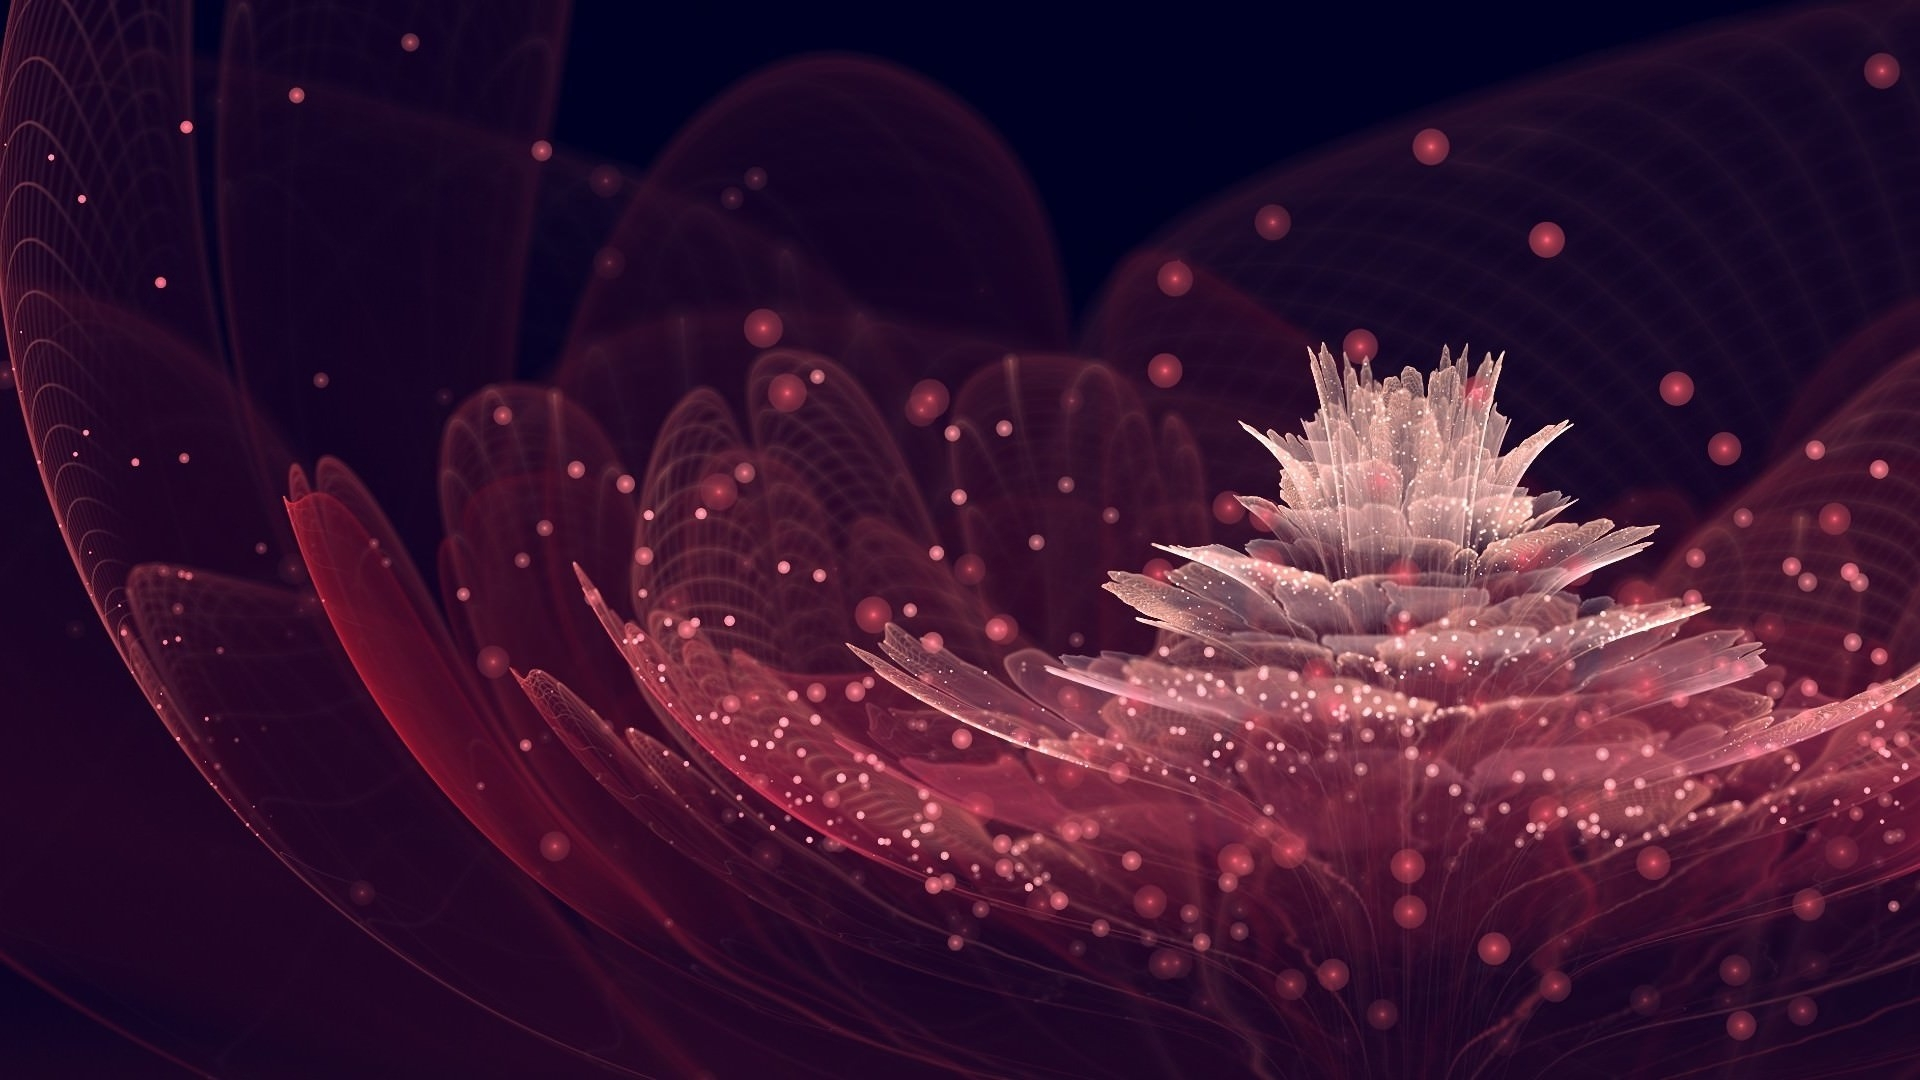 Stunning HD Fractal Desktop Wallpaper